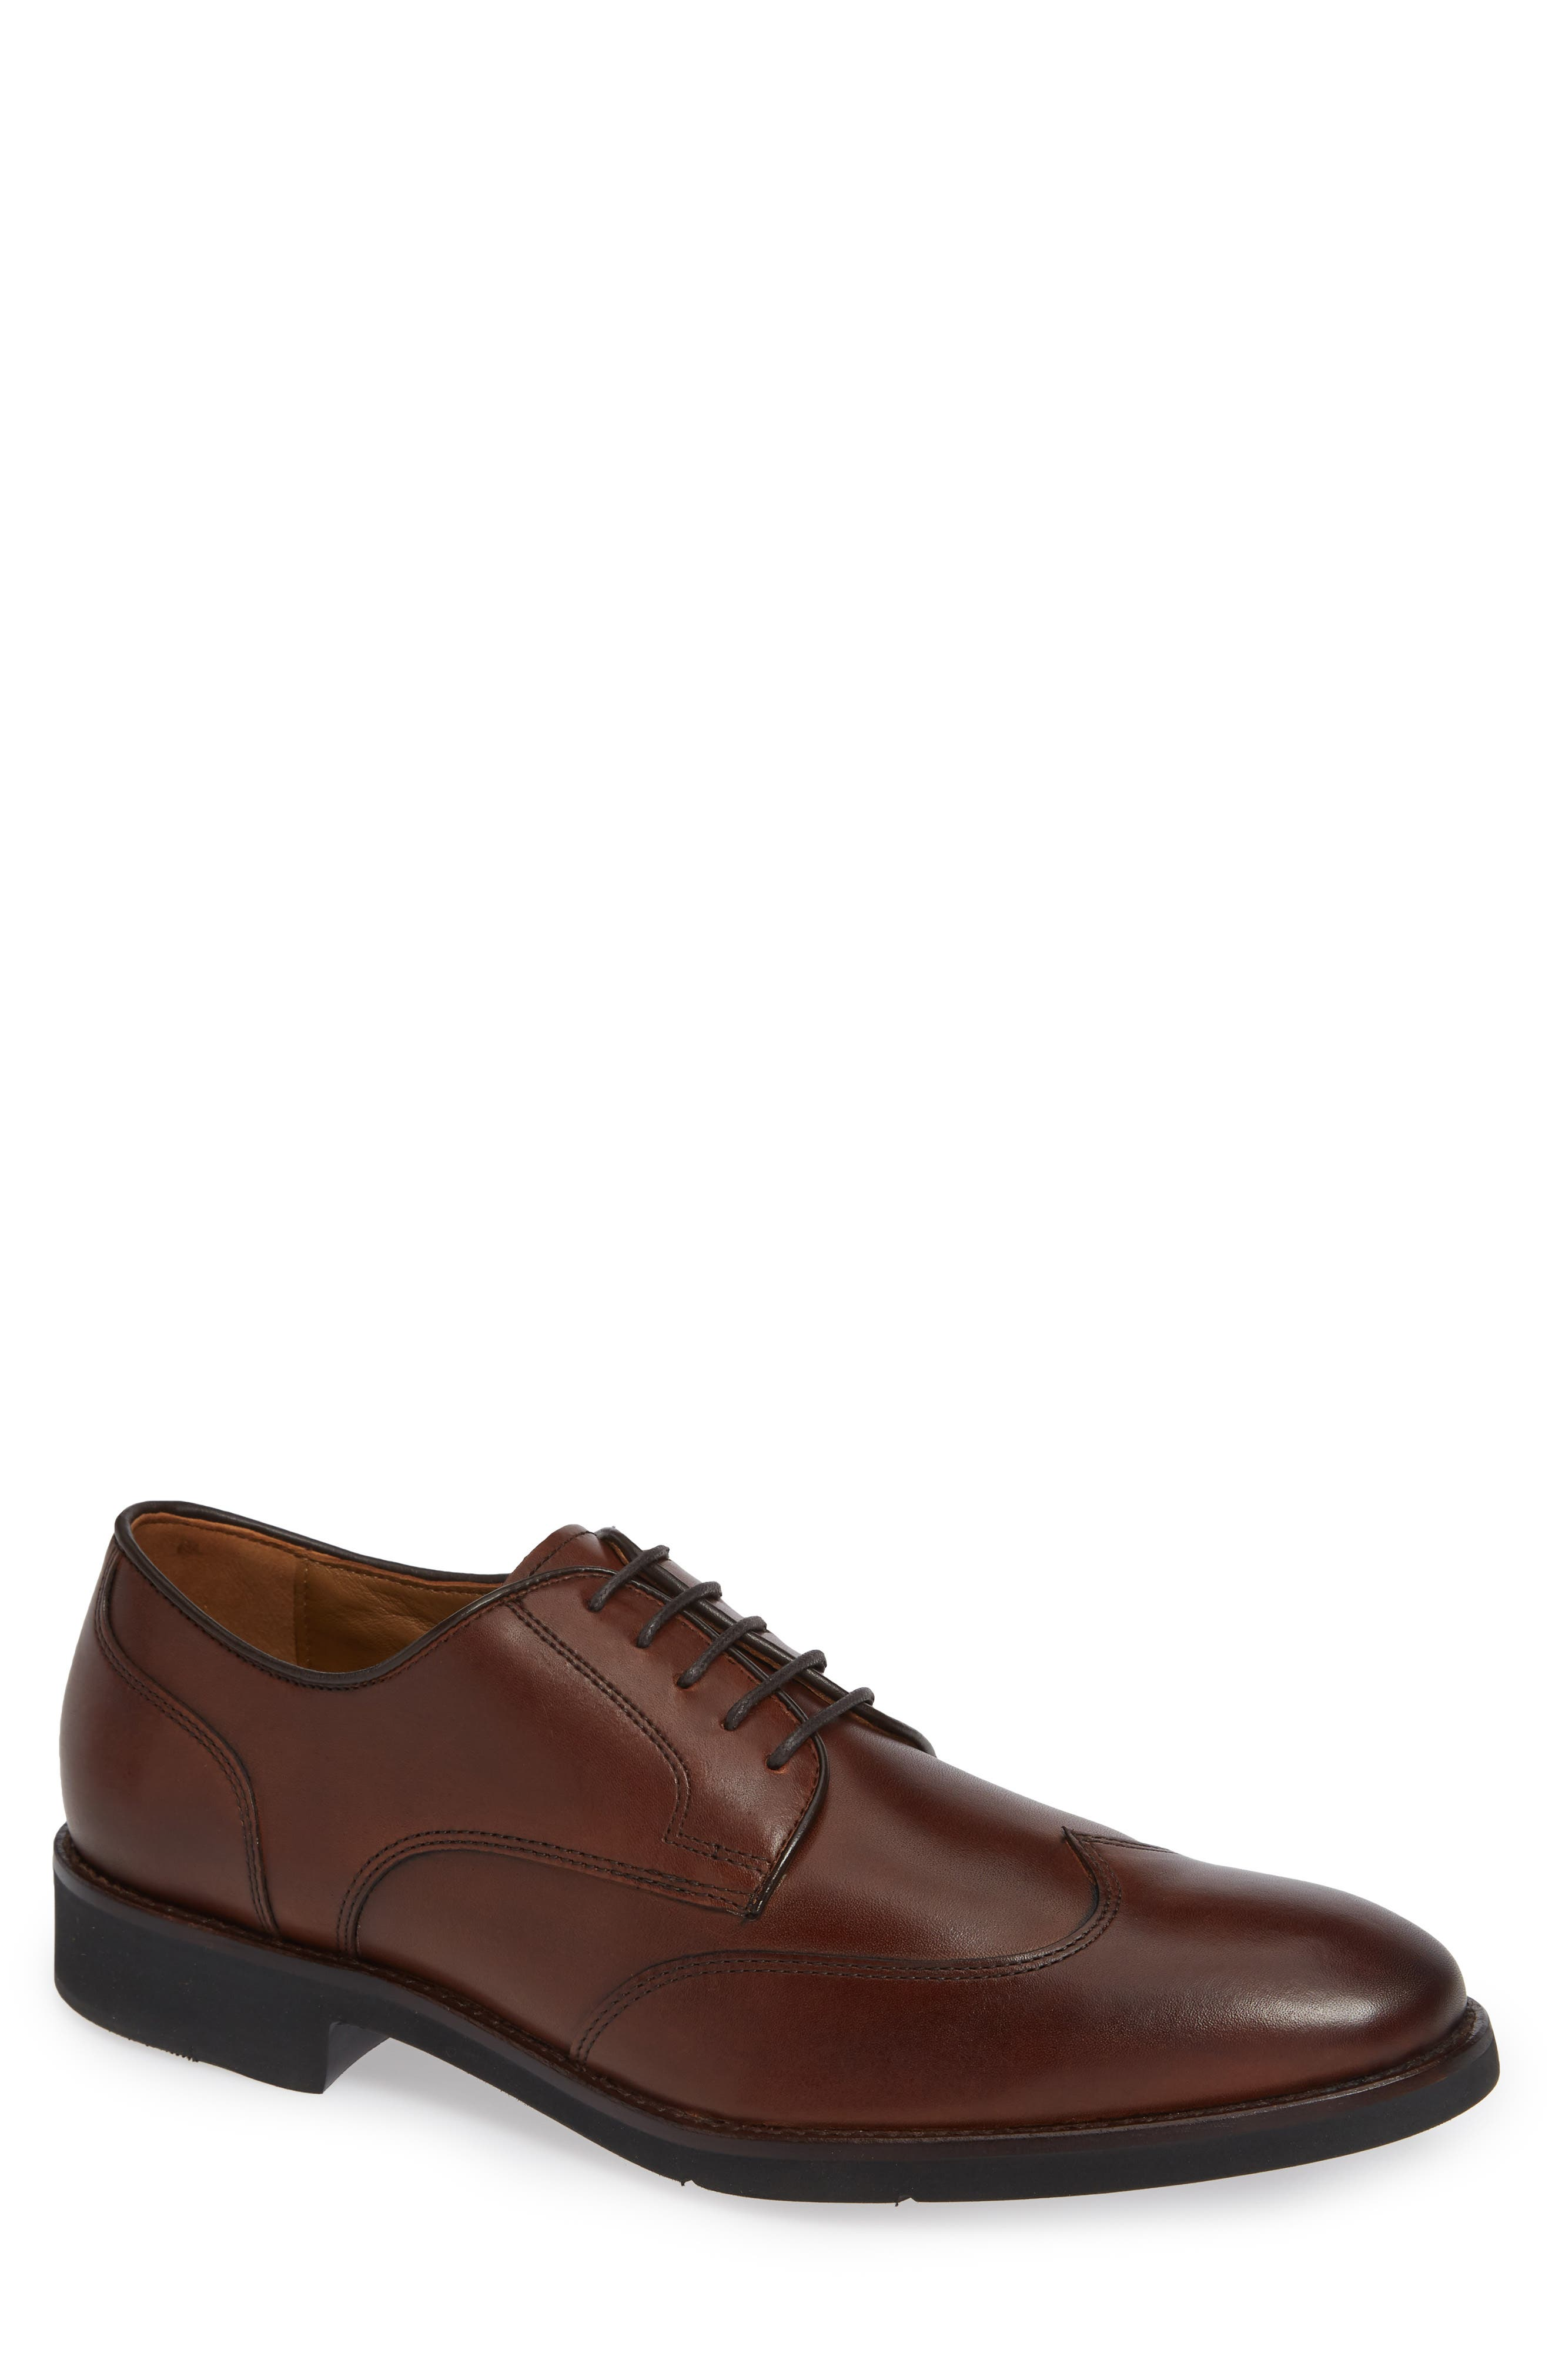 Carlson Wingtip,                             Main thumbnail 1, color,                             OAK LEATHER